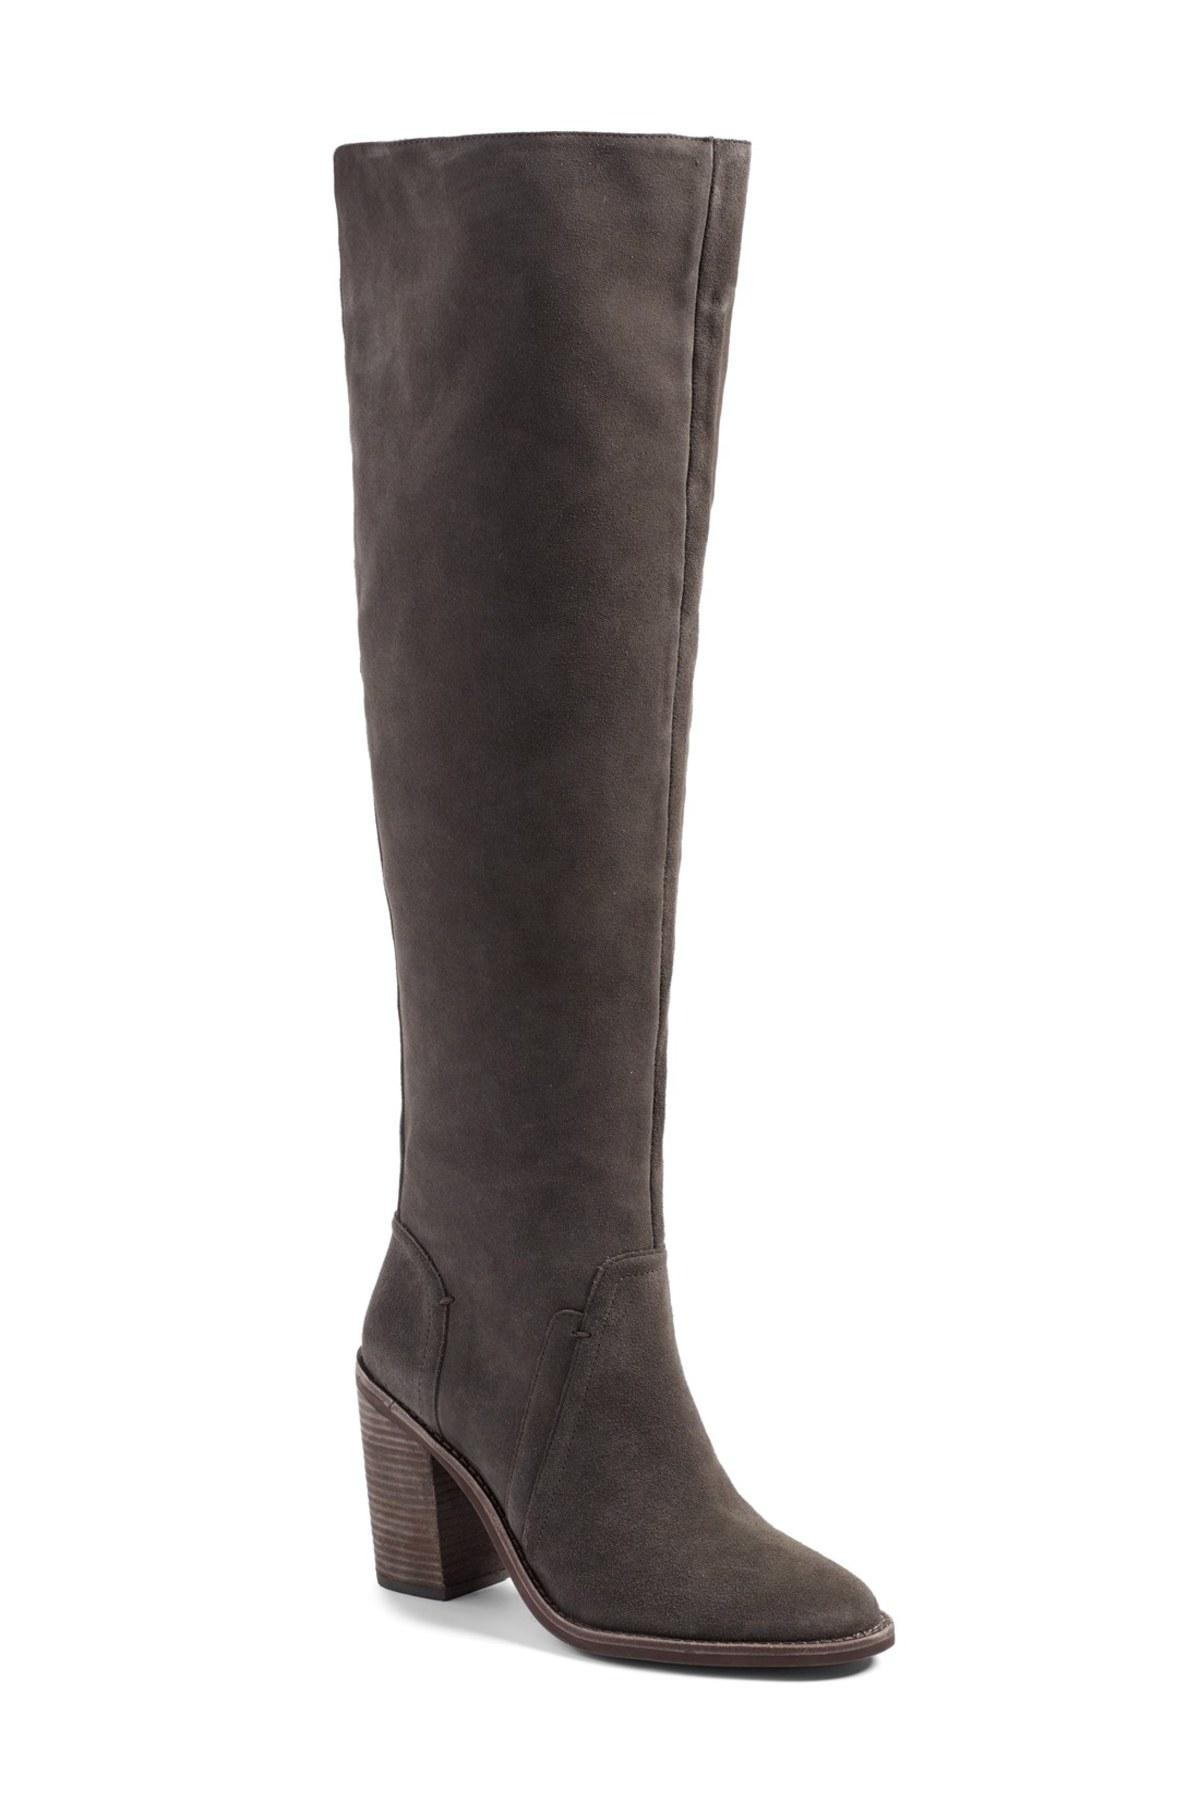 vince camuto melaya suede the knee boots in gray lyst